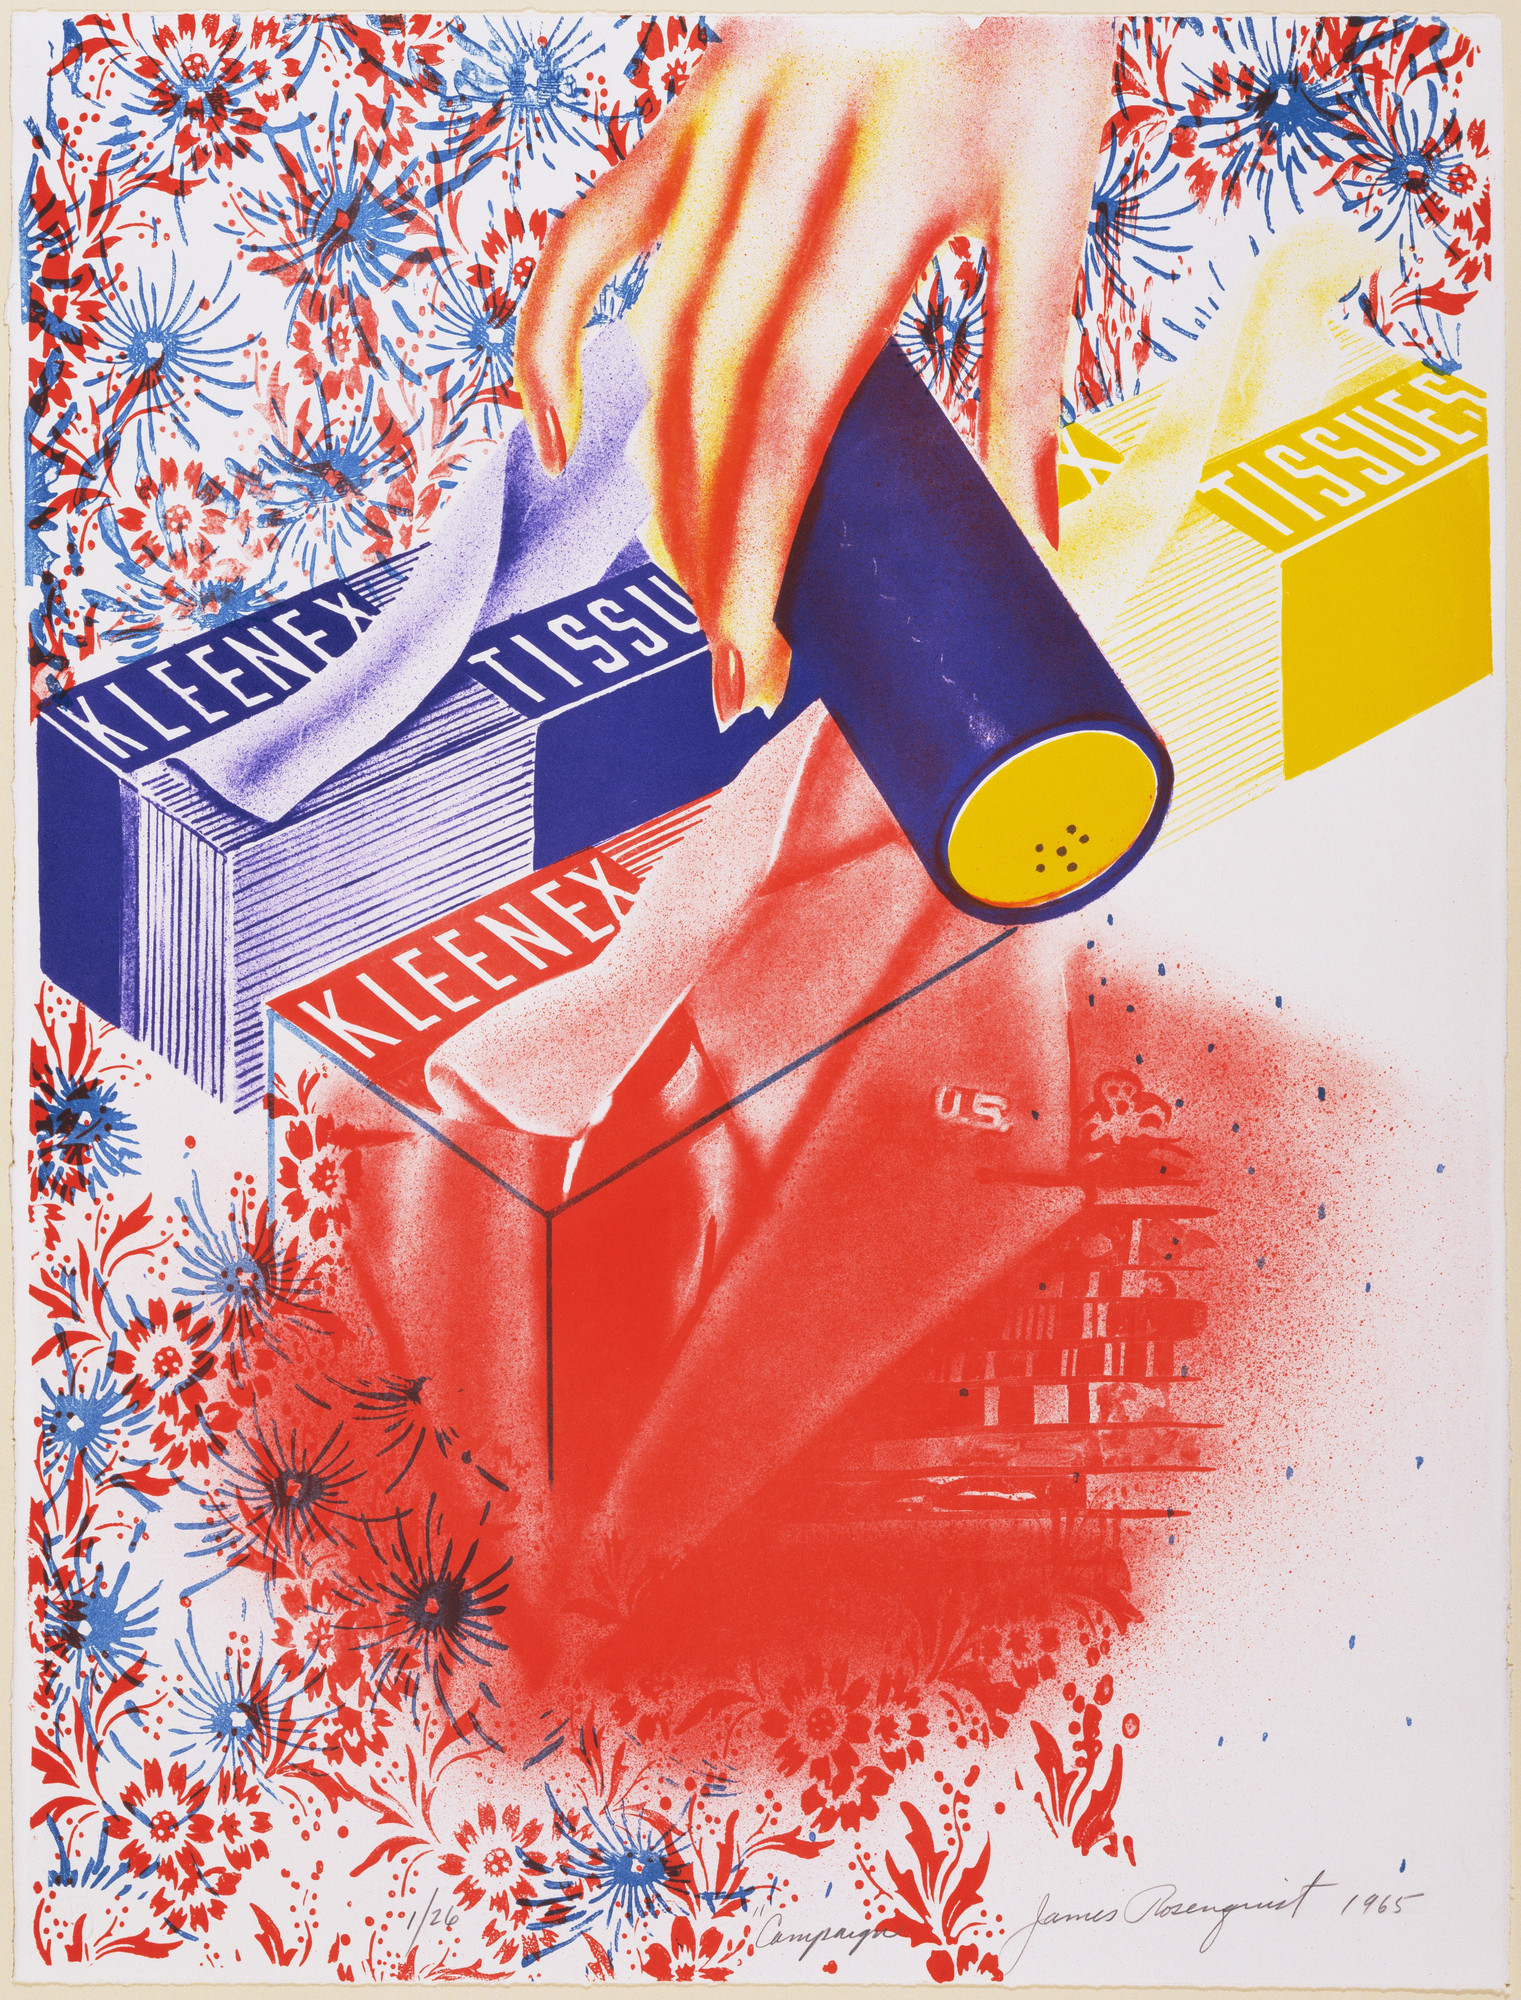 James Rosenquist. Campaign. 1965